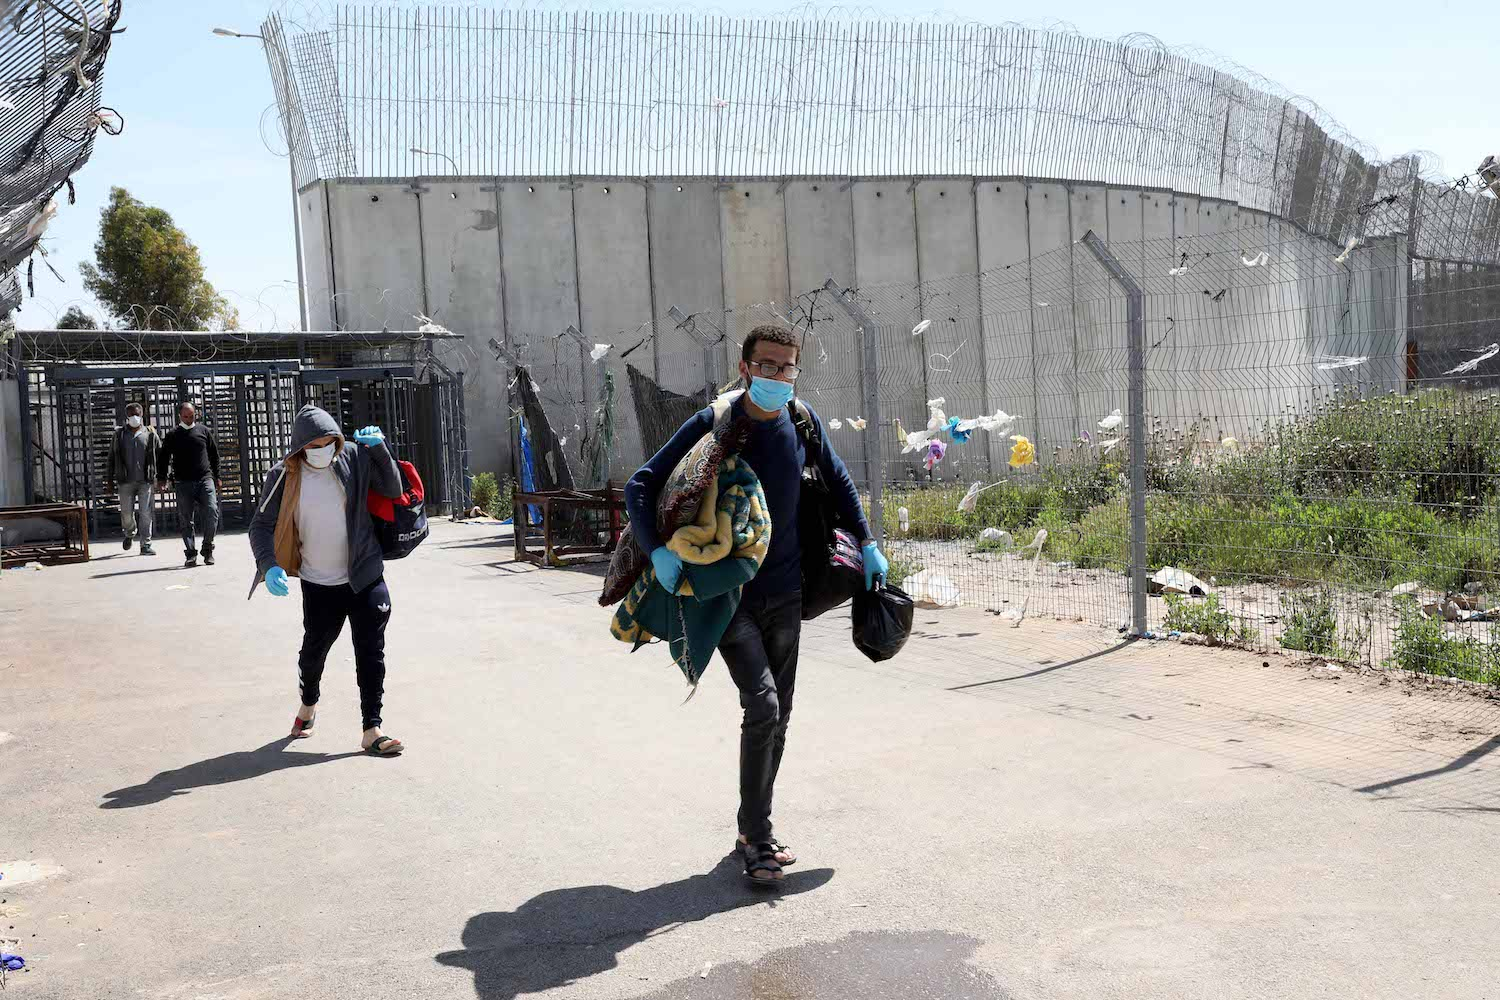 Palestinian workers cross back from Israel at a checkpoint at Mitar, near the West Bank city of Hebron, April 23, 2020. (Wisam Hashlamoun/Flash90)